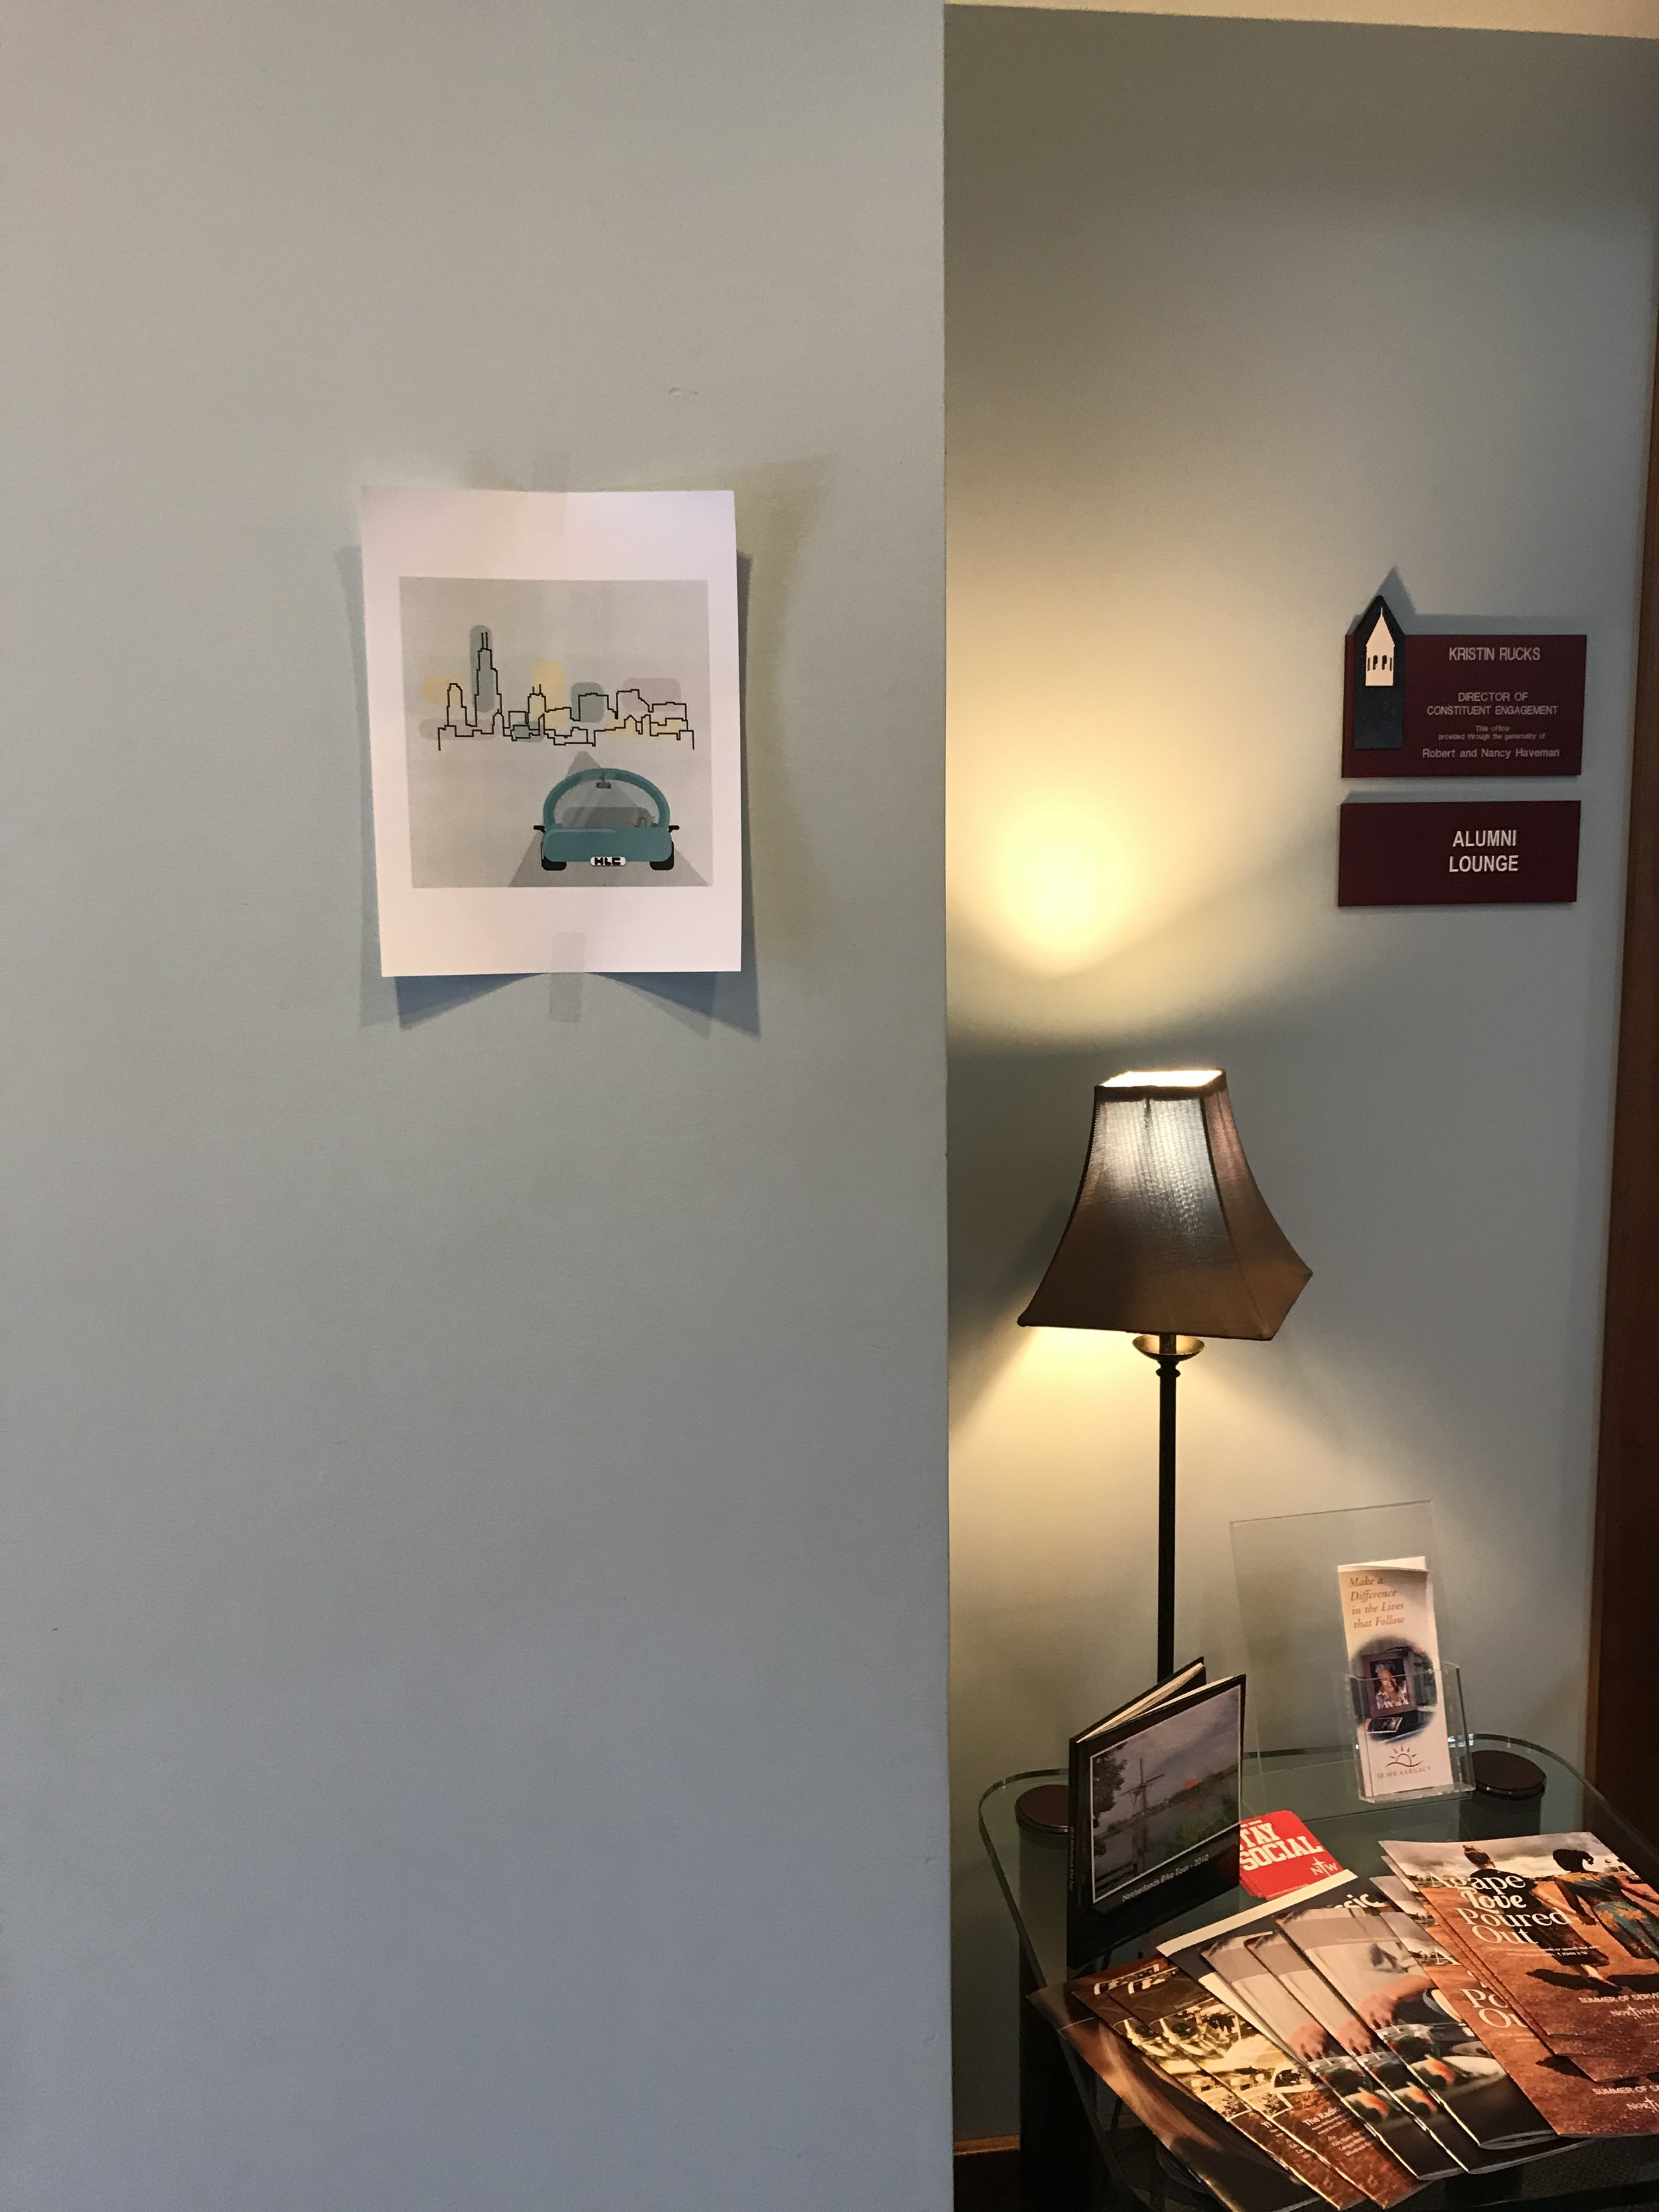 Here's a picture of my design that the NWC Advancment Office team printed out for me to see when I stepped out of the elevator at my work study.